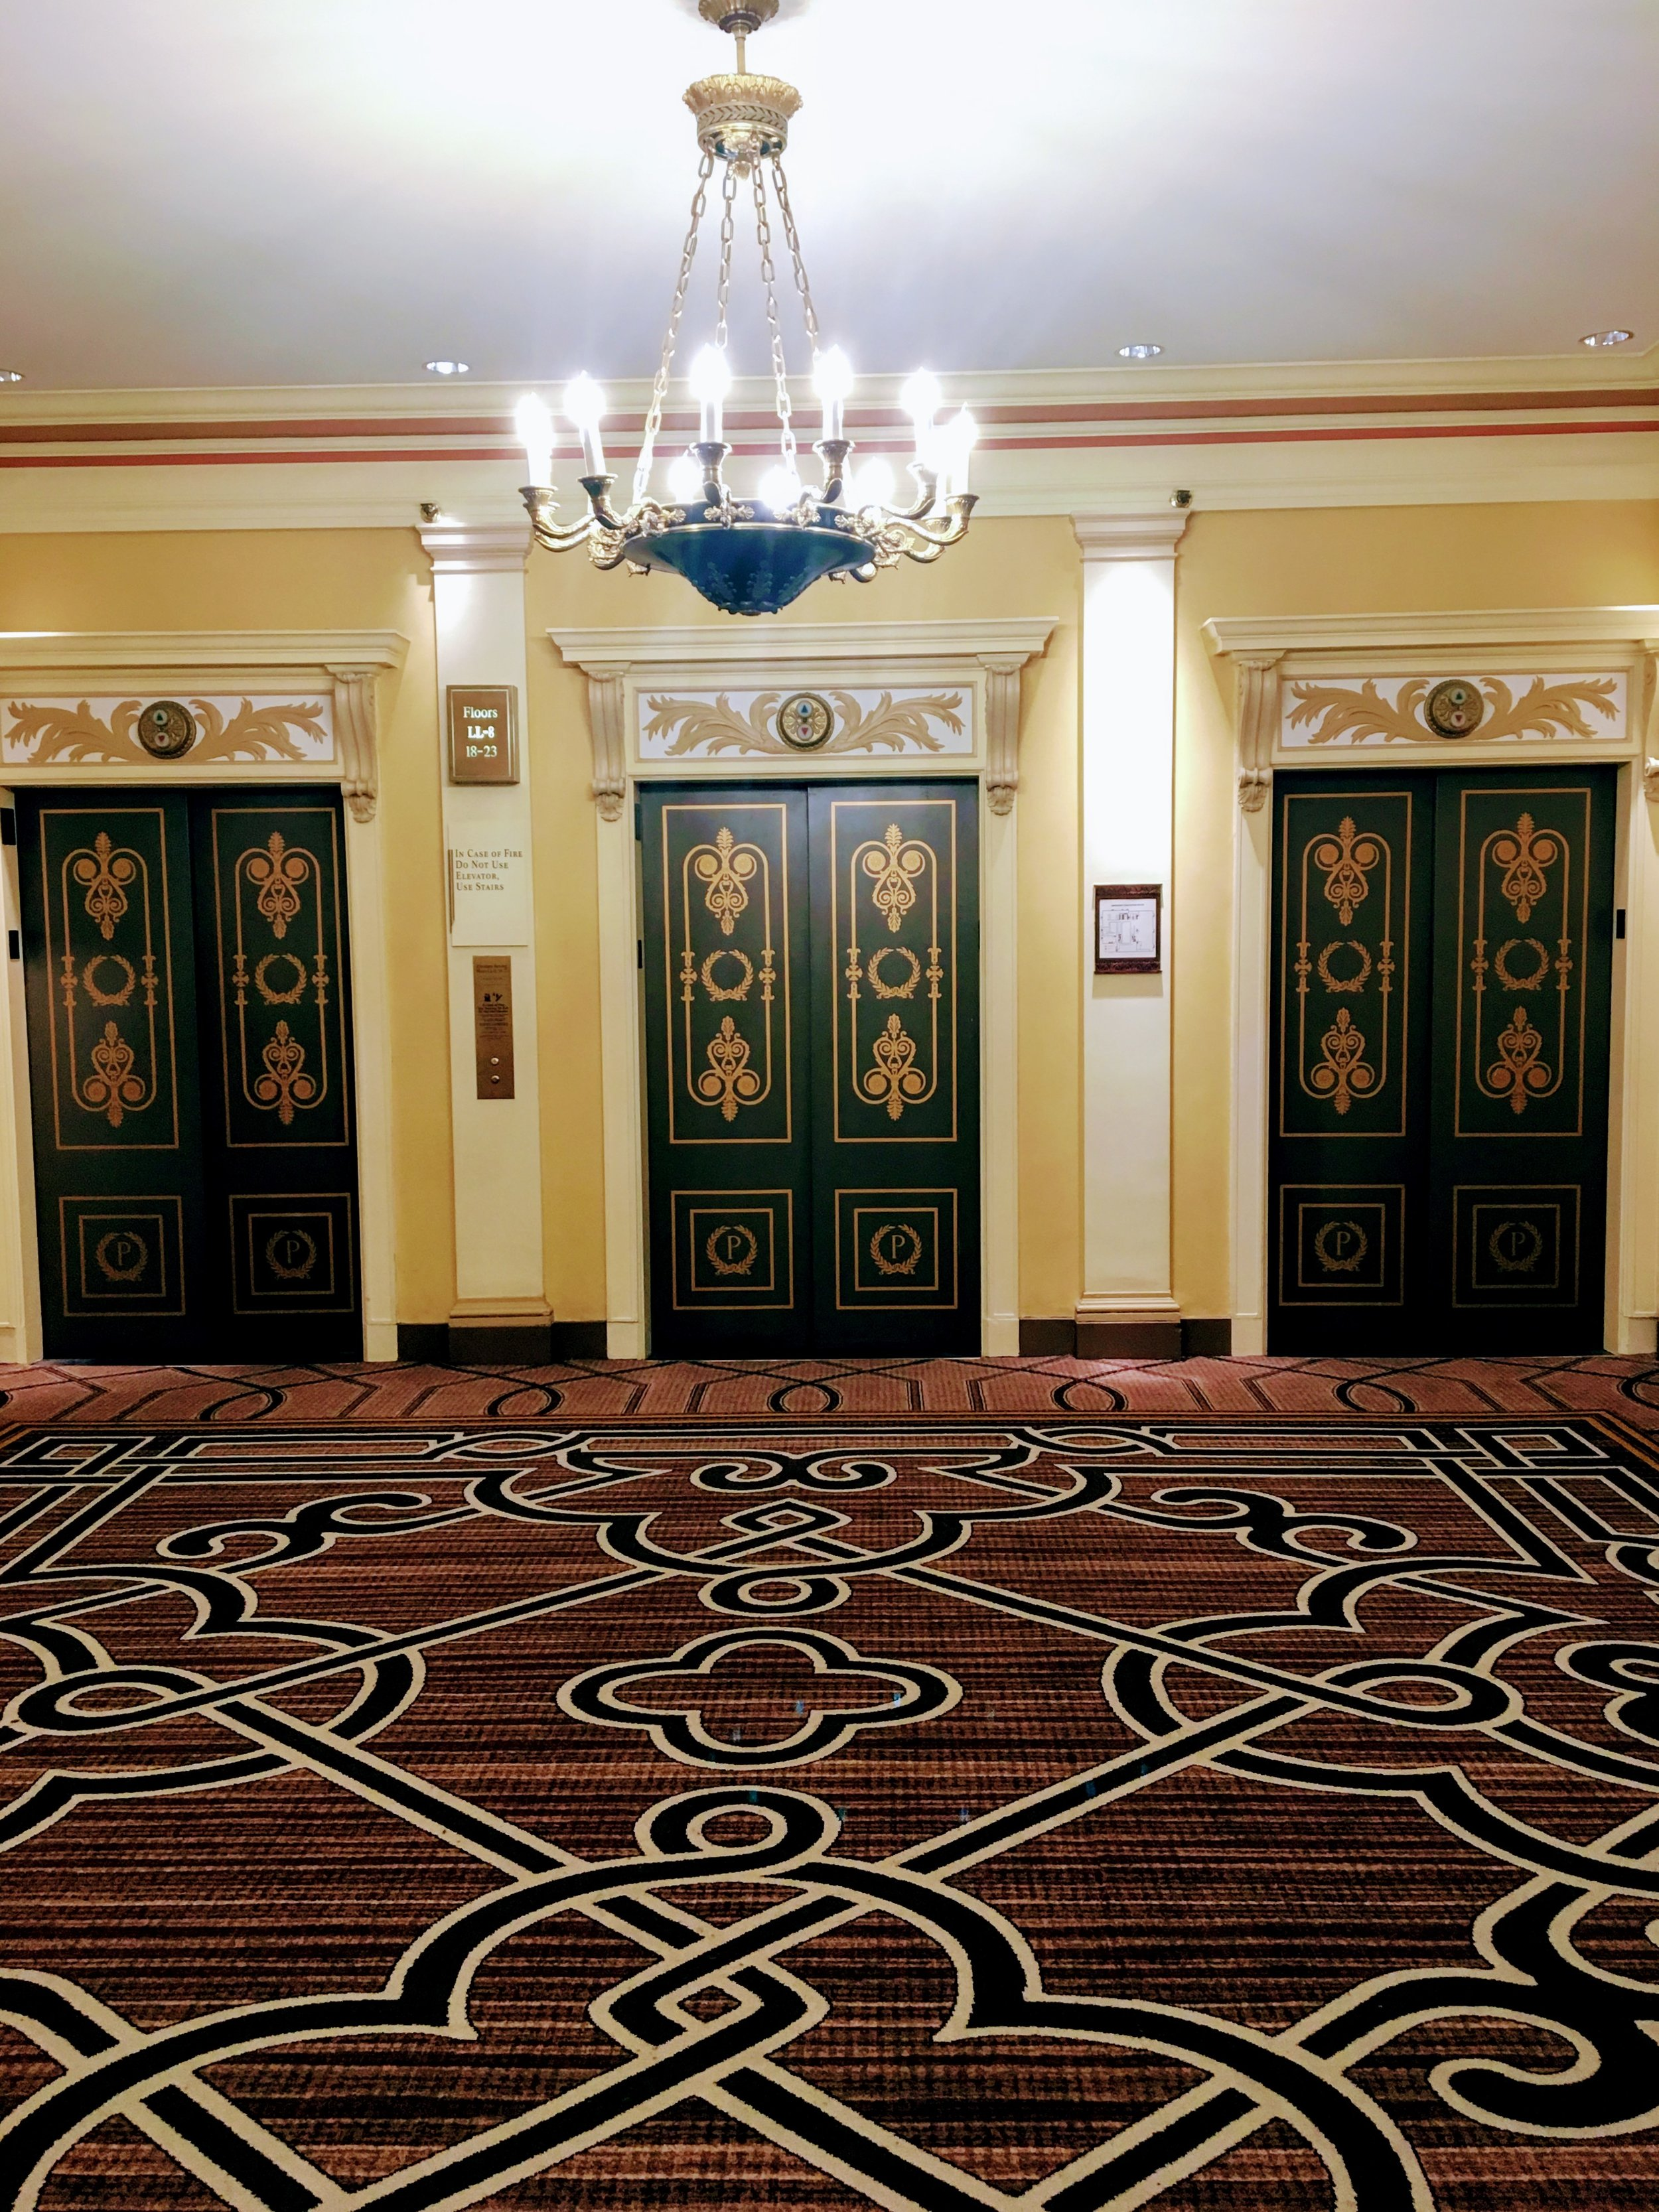 The elevators at the Palmer House. So gorgeous. Photo by Ranger Holly.